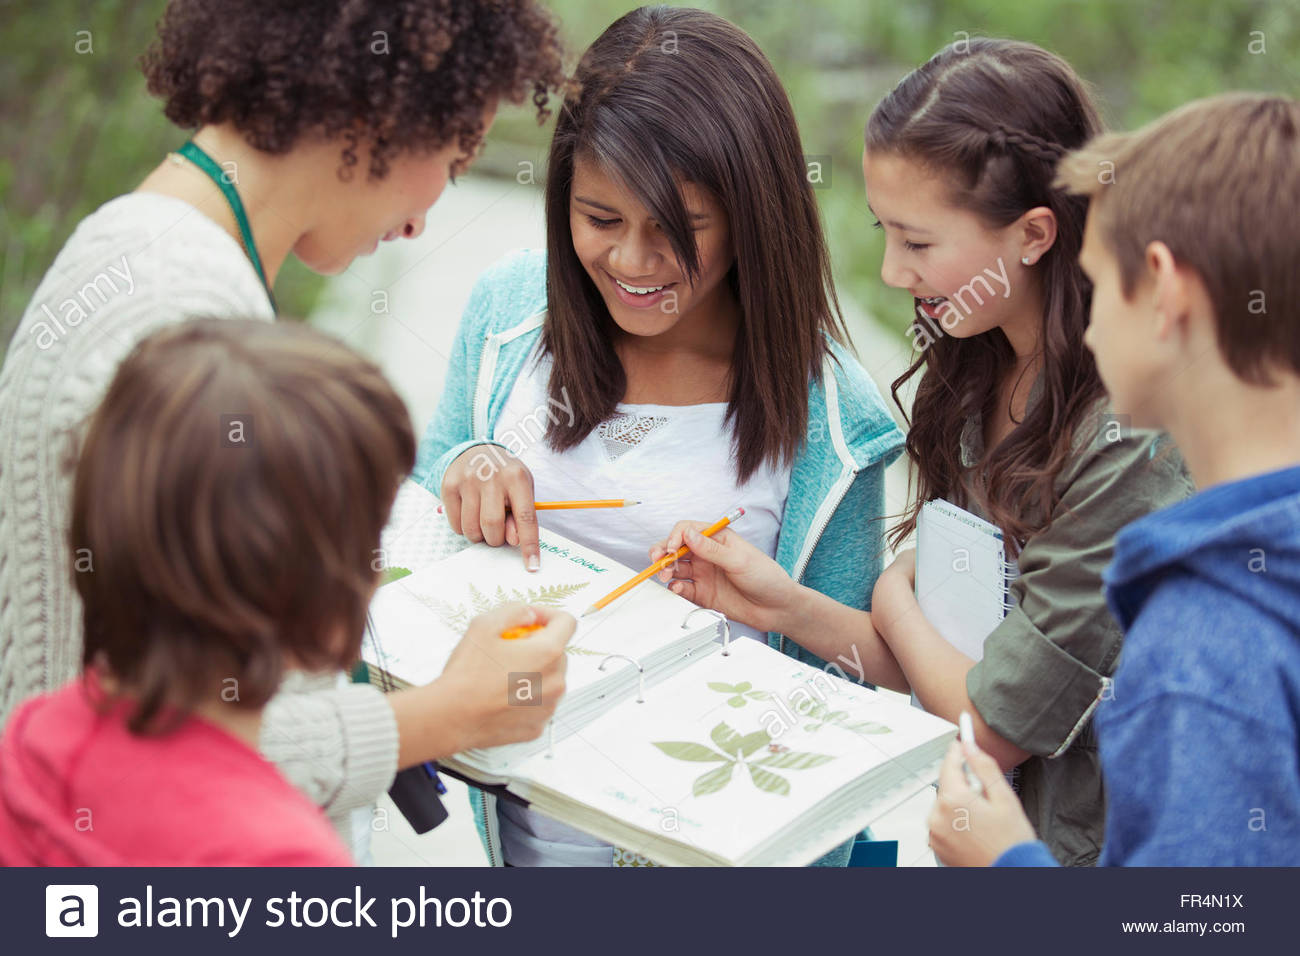 students and teacher identifying plants - Stock Image